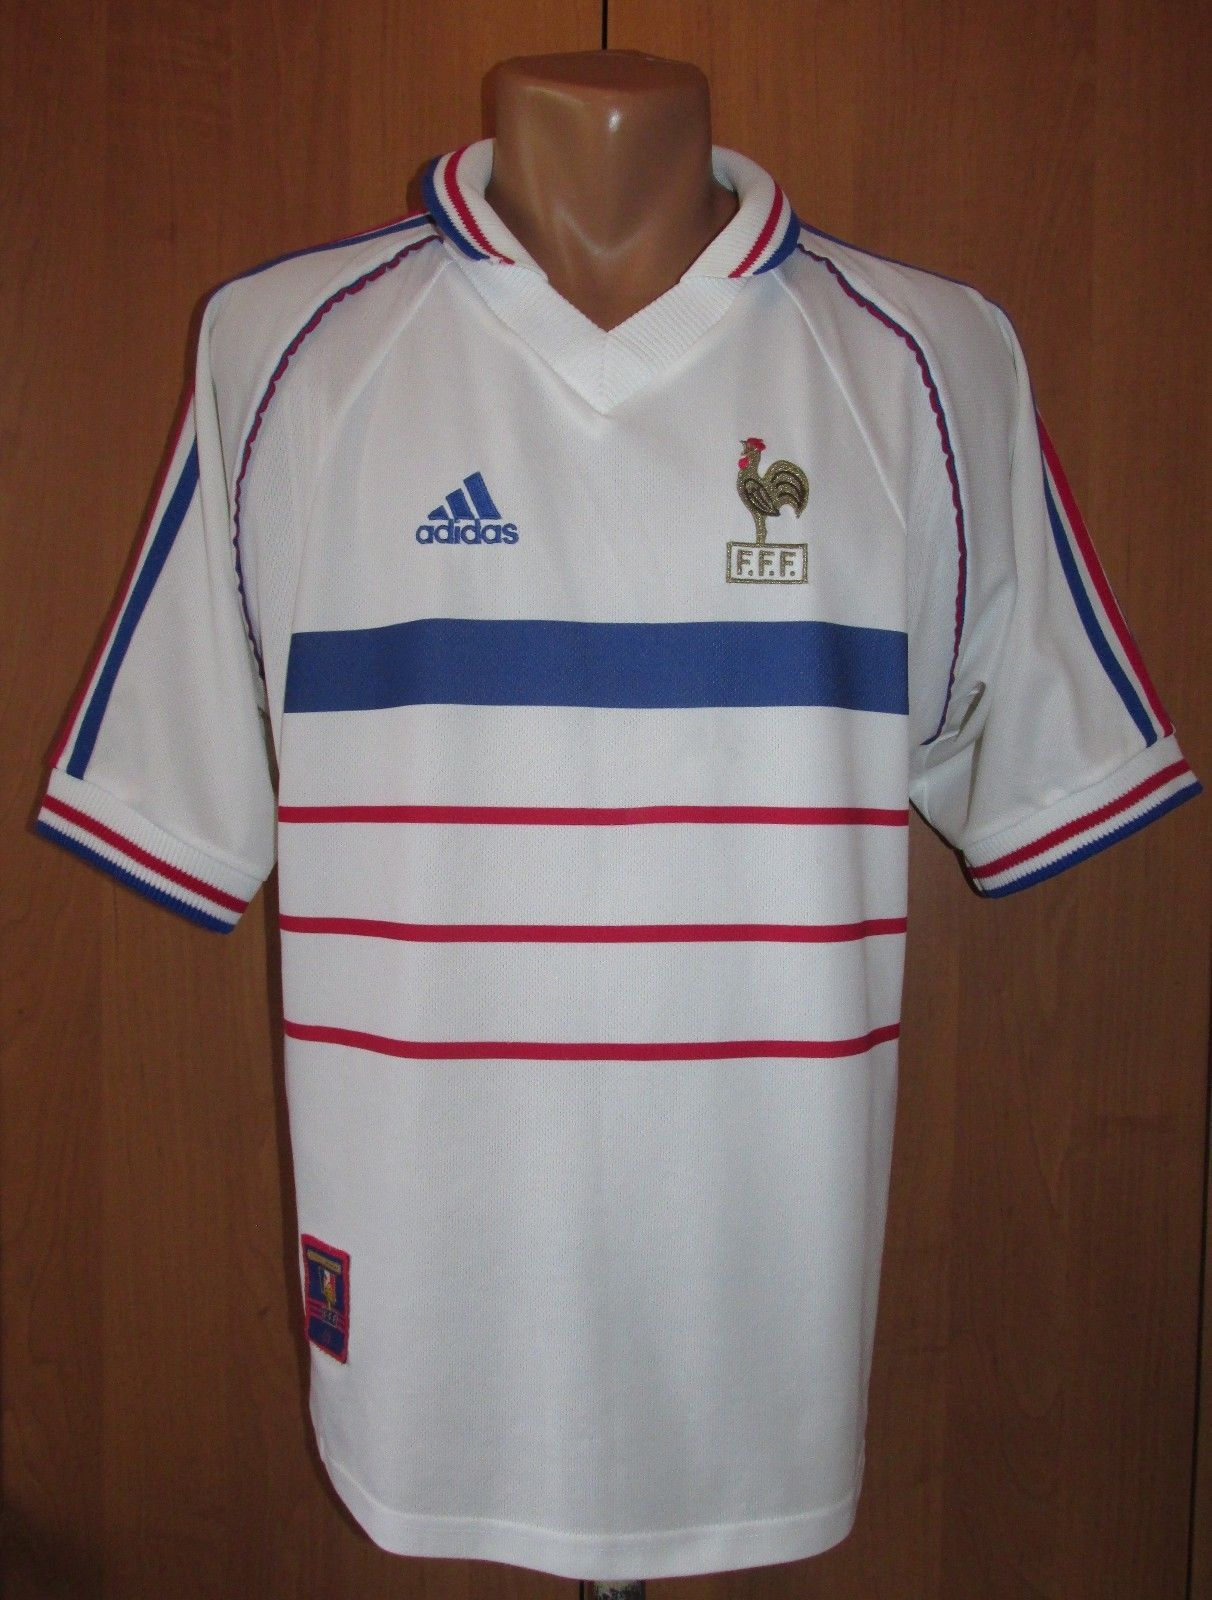 4157cef395 FRANCE 1998 1999 2000 AWAY FOOTBALL SHIRT JERSEY MAILLOT ADIDAS WORLD CUP   98 M (eBay Link)